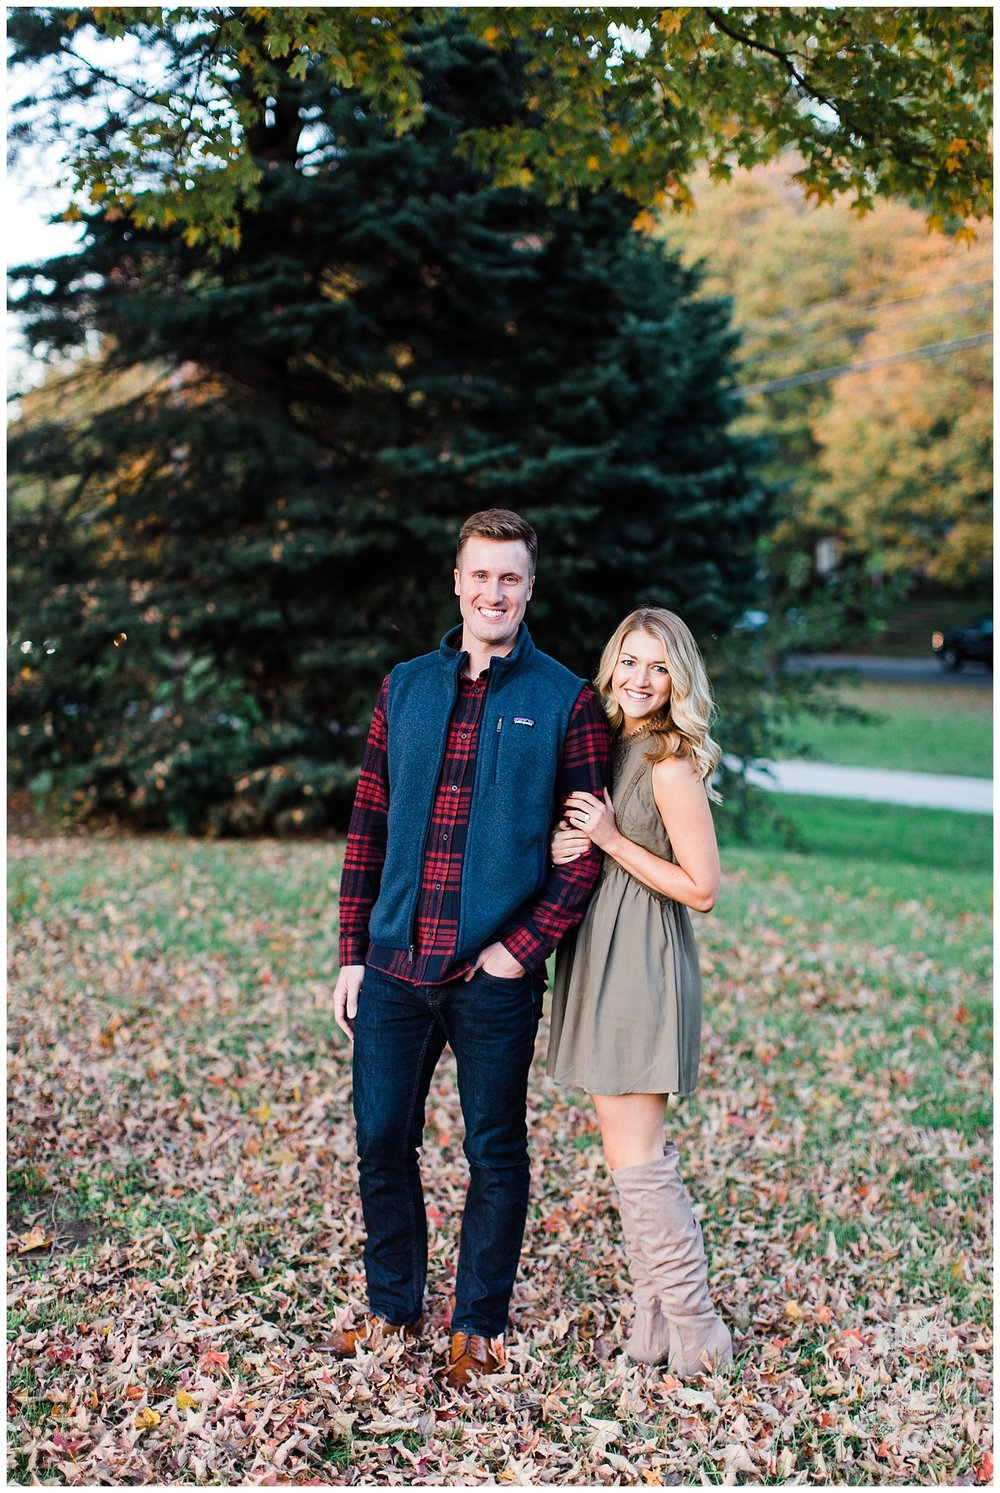 KATE & NATE ENGAGEMENT | NELSON ATKINS | MARISSA CRIBBS PHOTOGRAPHY_3584.jpg